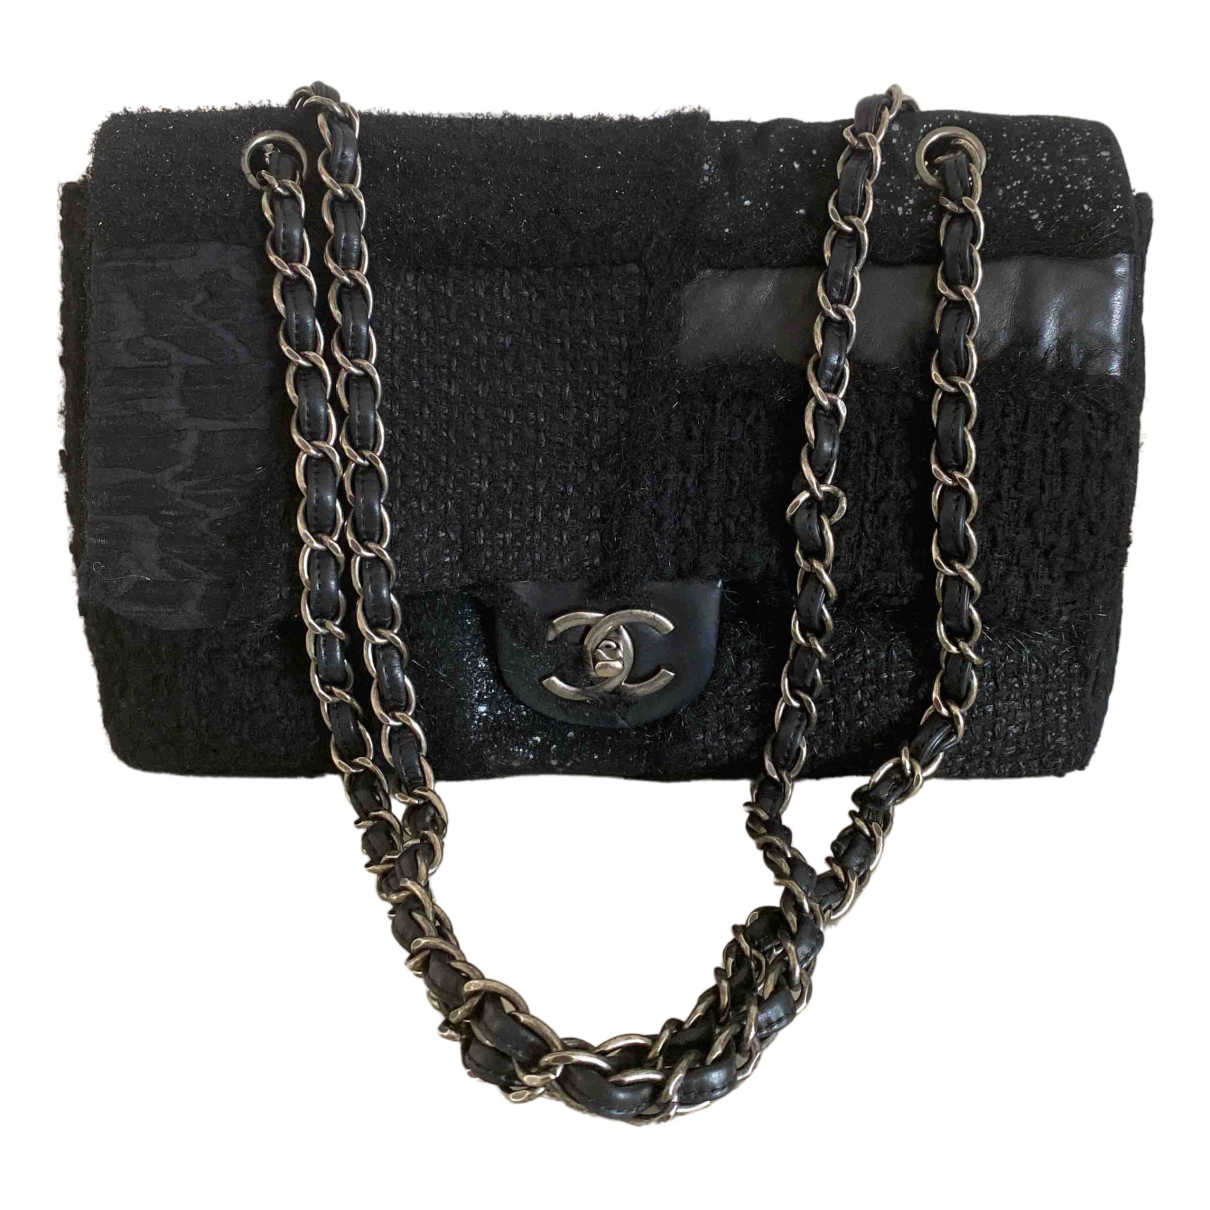 Chanel Timeless/Classique Black Tweed handbag for Women \N